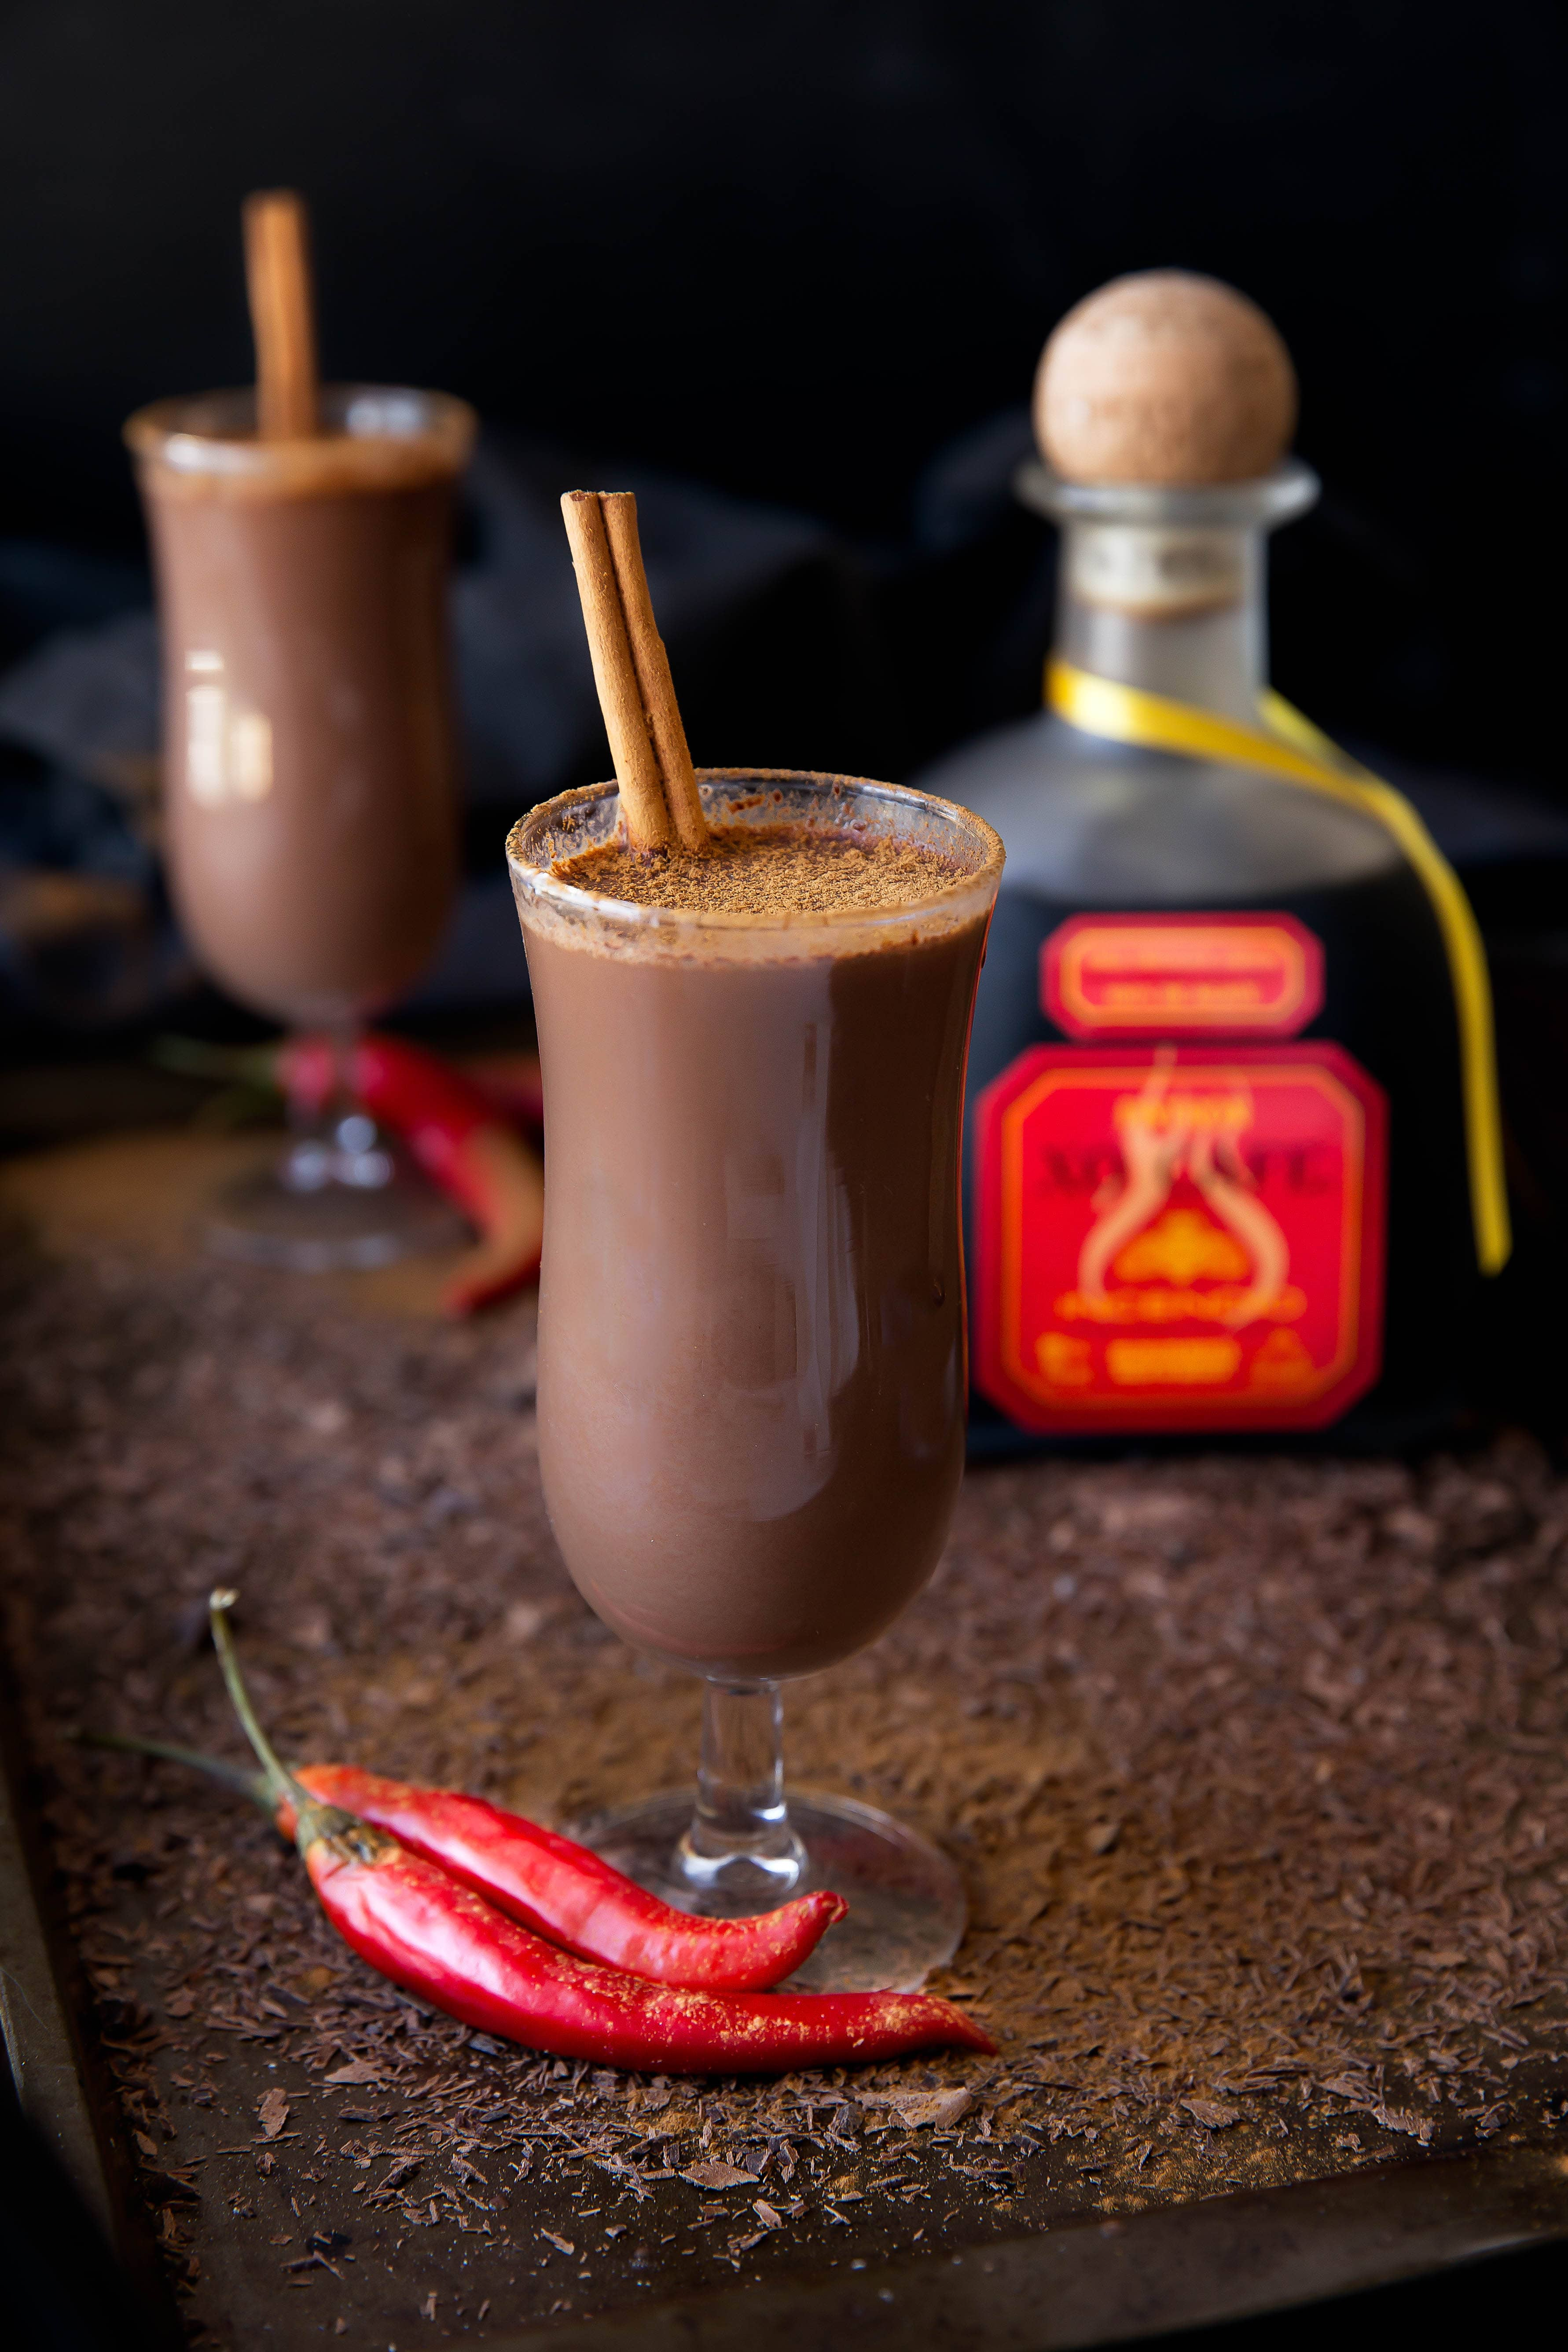 Hot Chocolate del Diablo: a decadent boozy hot cocoa made with chocolate chile tequila for a kick of spice!